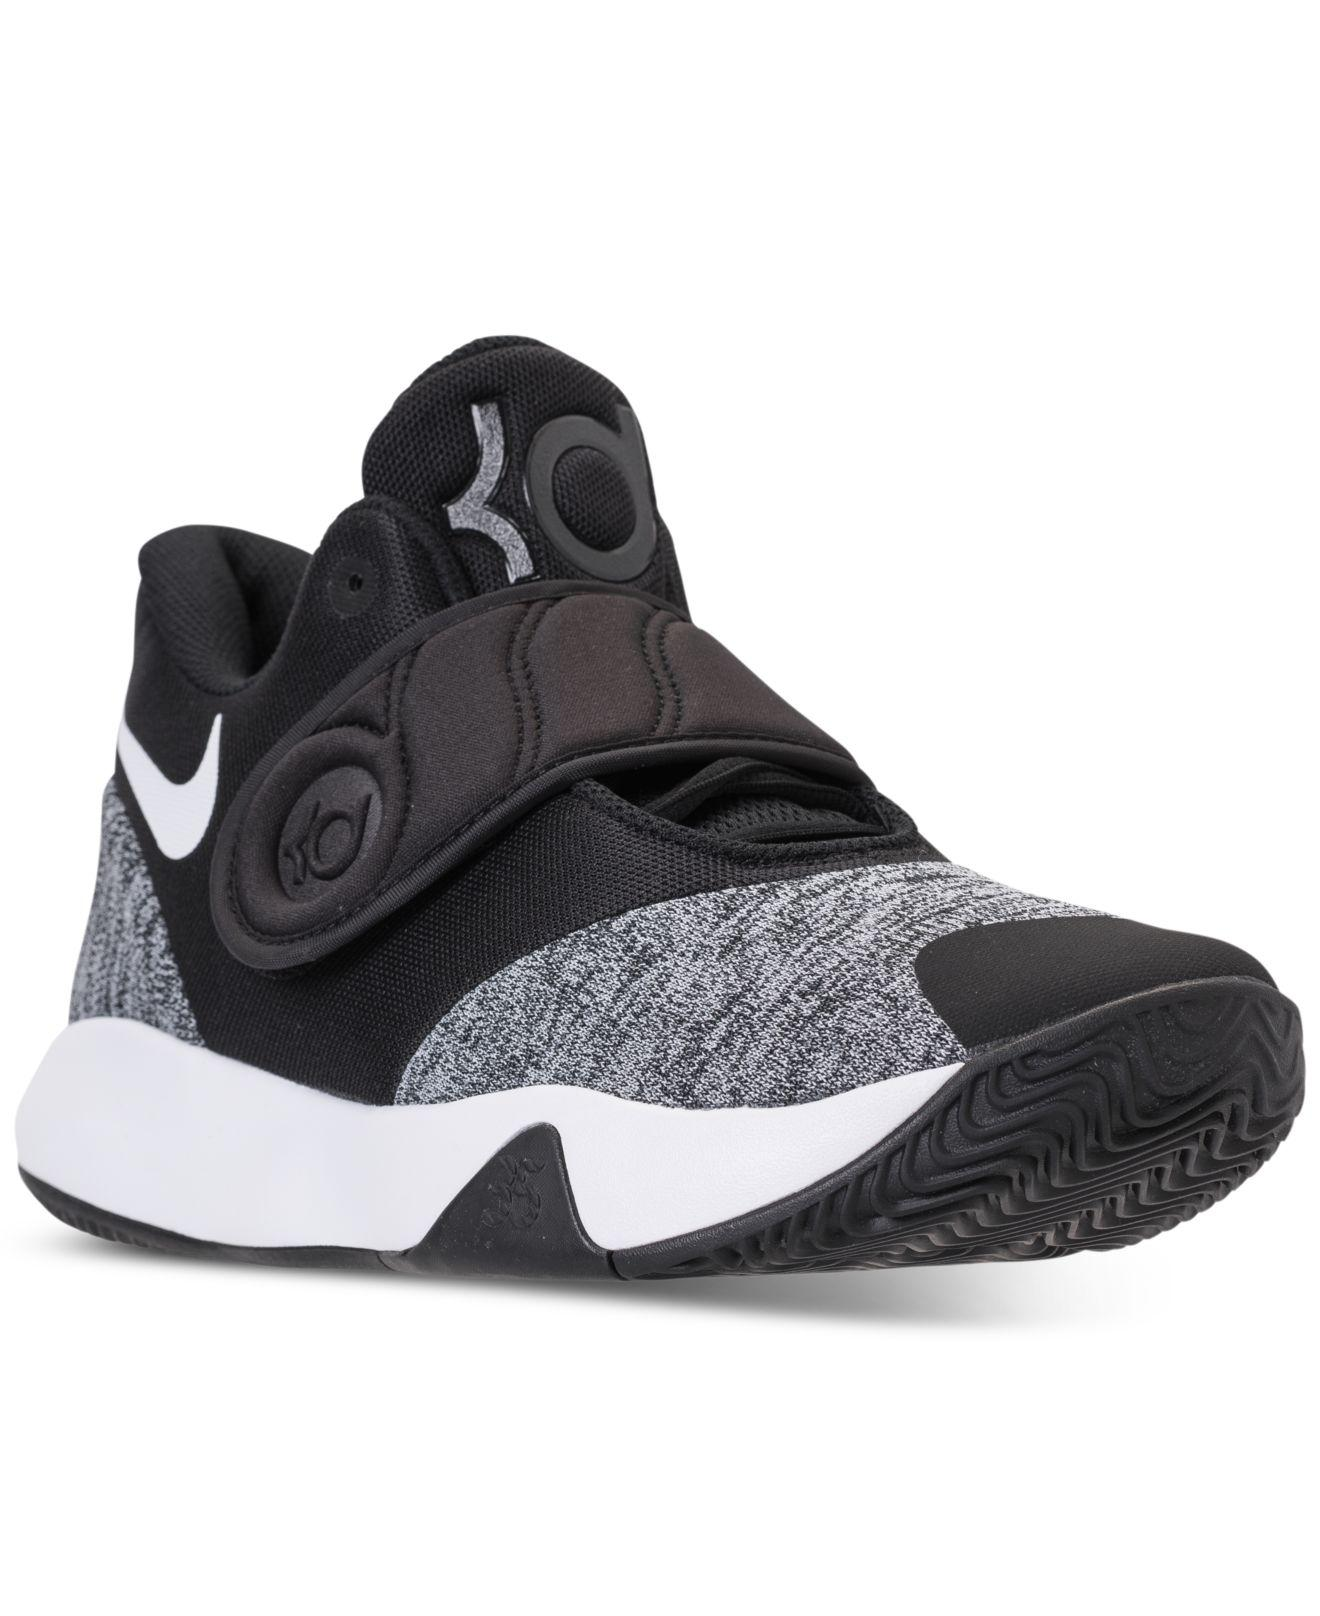 dee550eca5b ... sale lyst nike kd trey 5 vi basketball sneakers from finish line in  e8be6 dc796